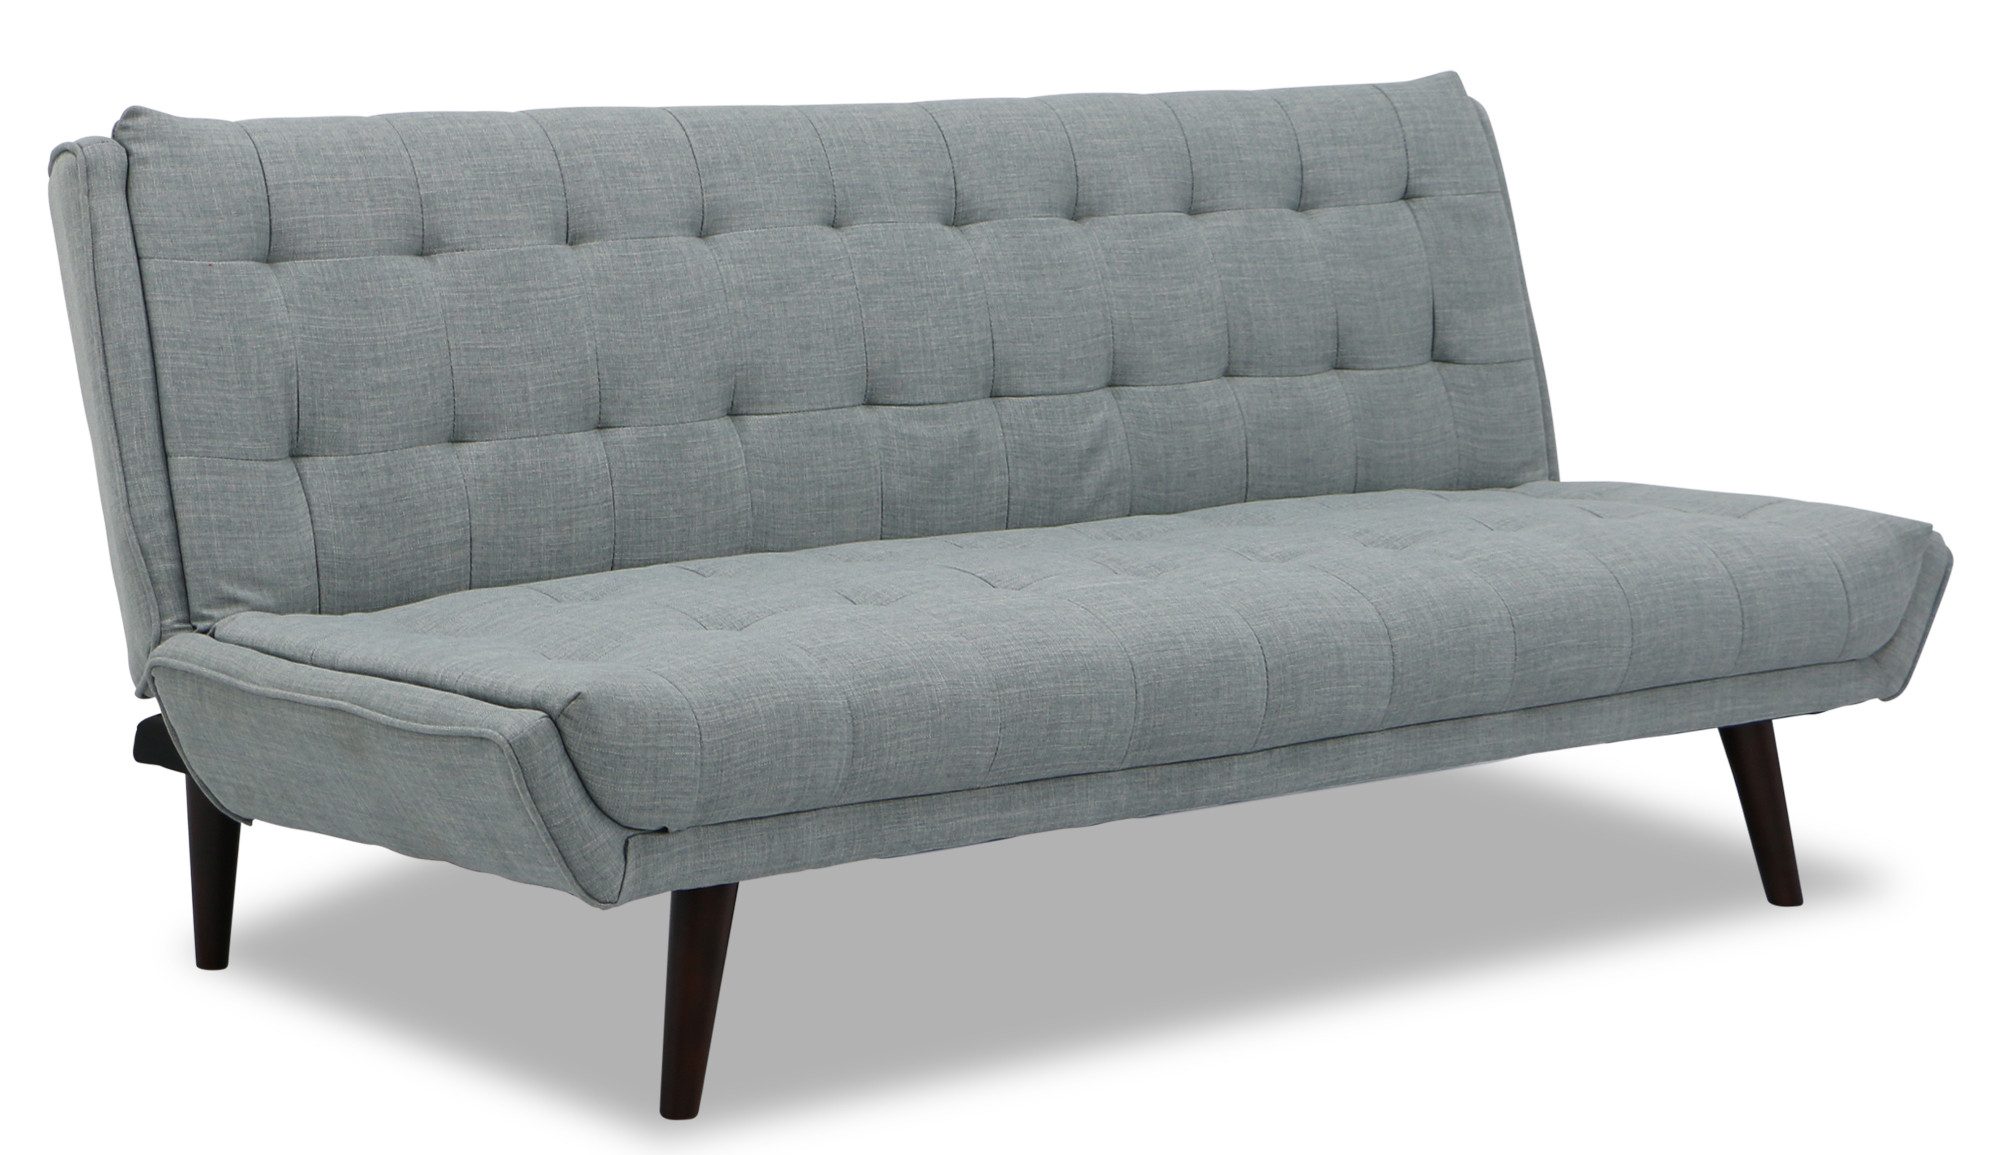 Light Sofa Bed Light Weight Couches Wish 14 Outstanding